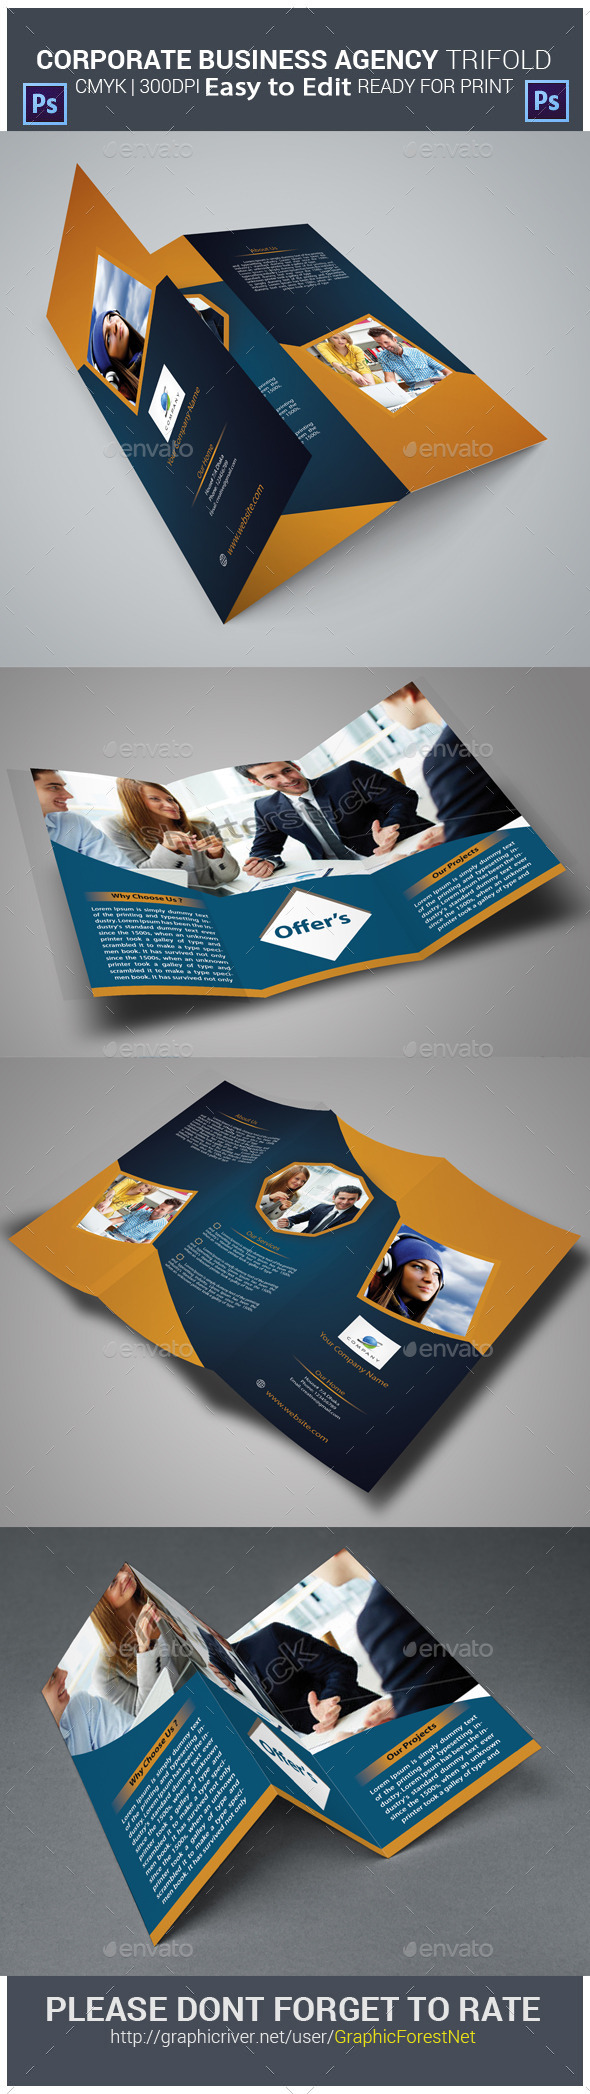 GraphicRiver Corporate Business Agency Tri-fold Brochure 10049391